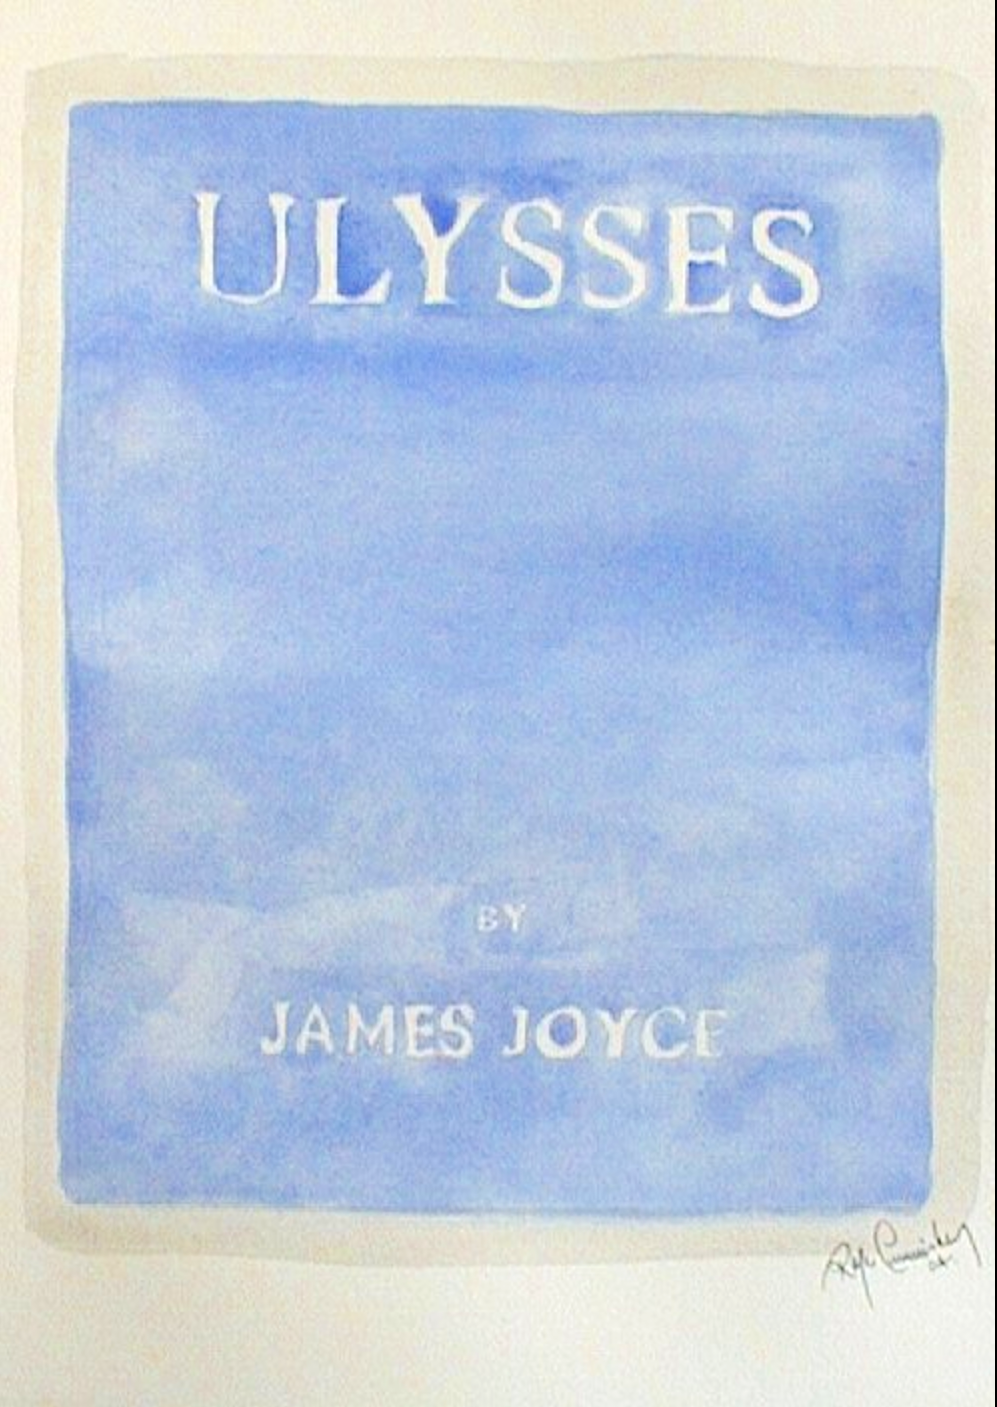 Ulysses-the-book-painting